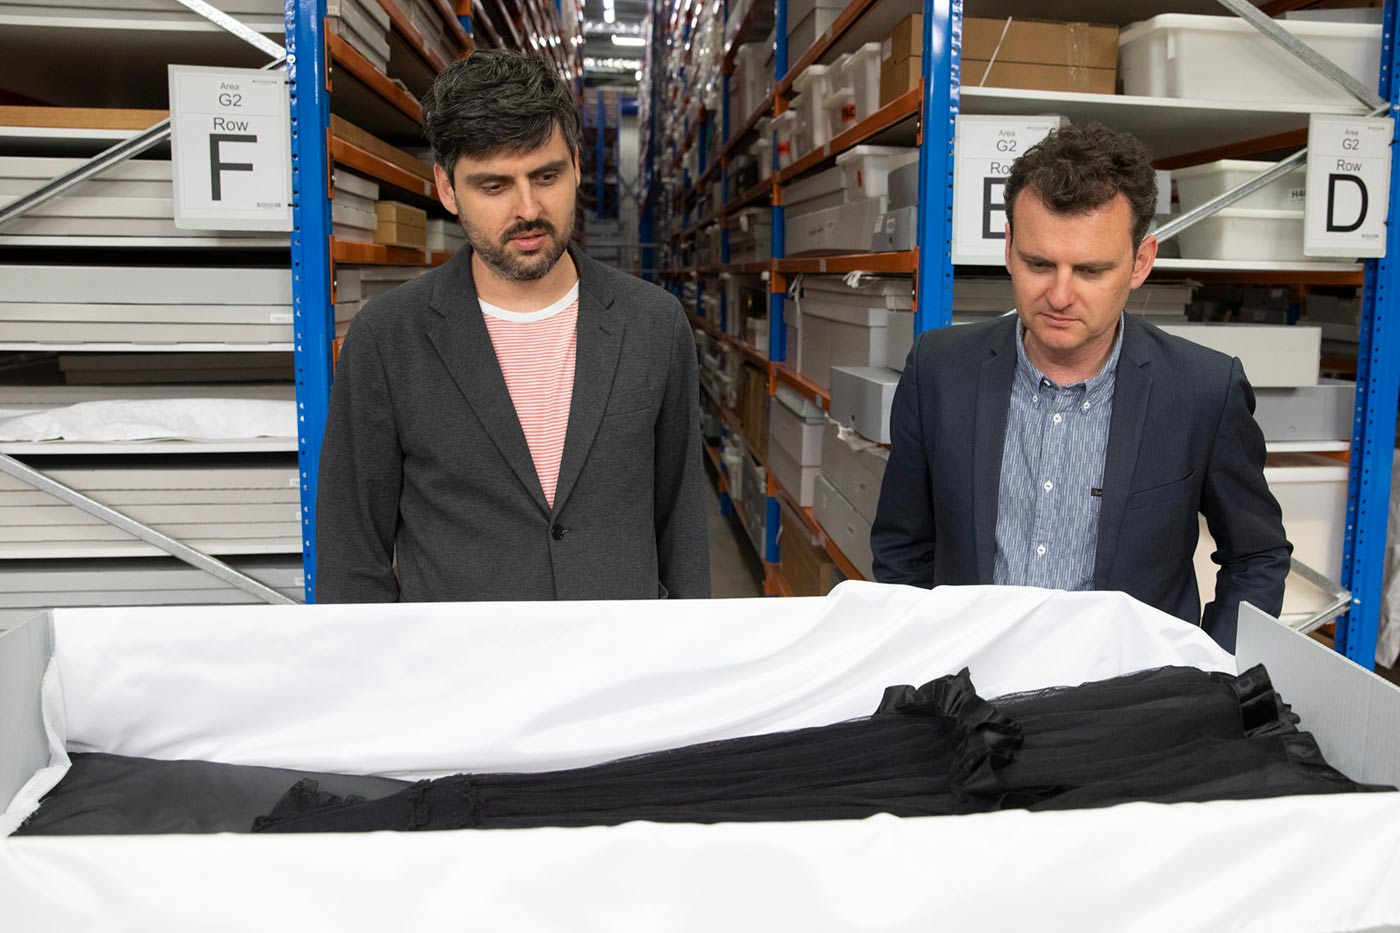 Slava and Leonard Grigoryan inspect a black lace dress displayed in a conservation box.